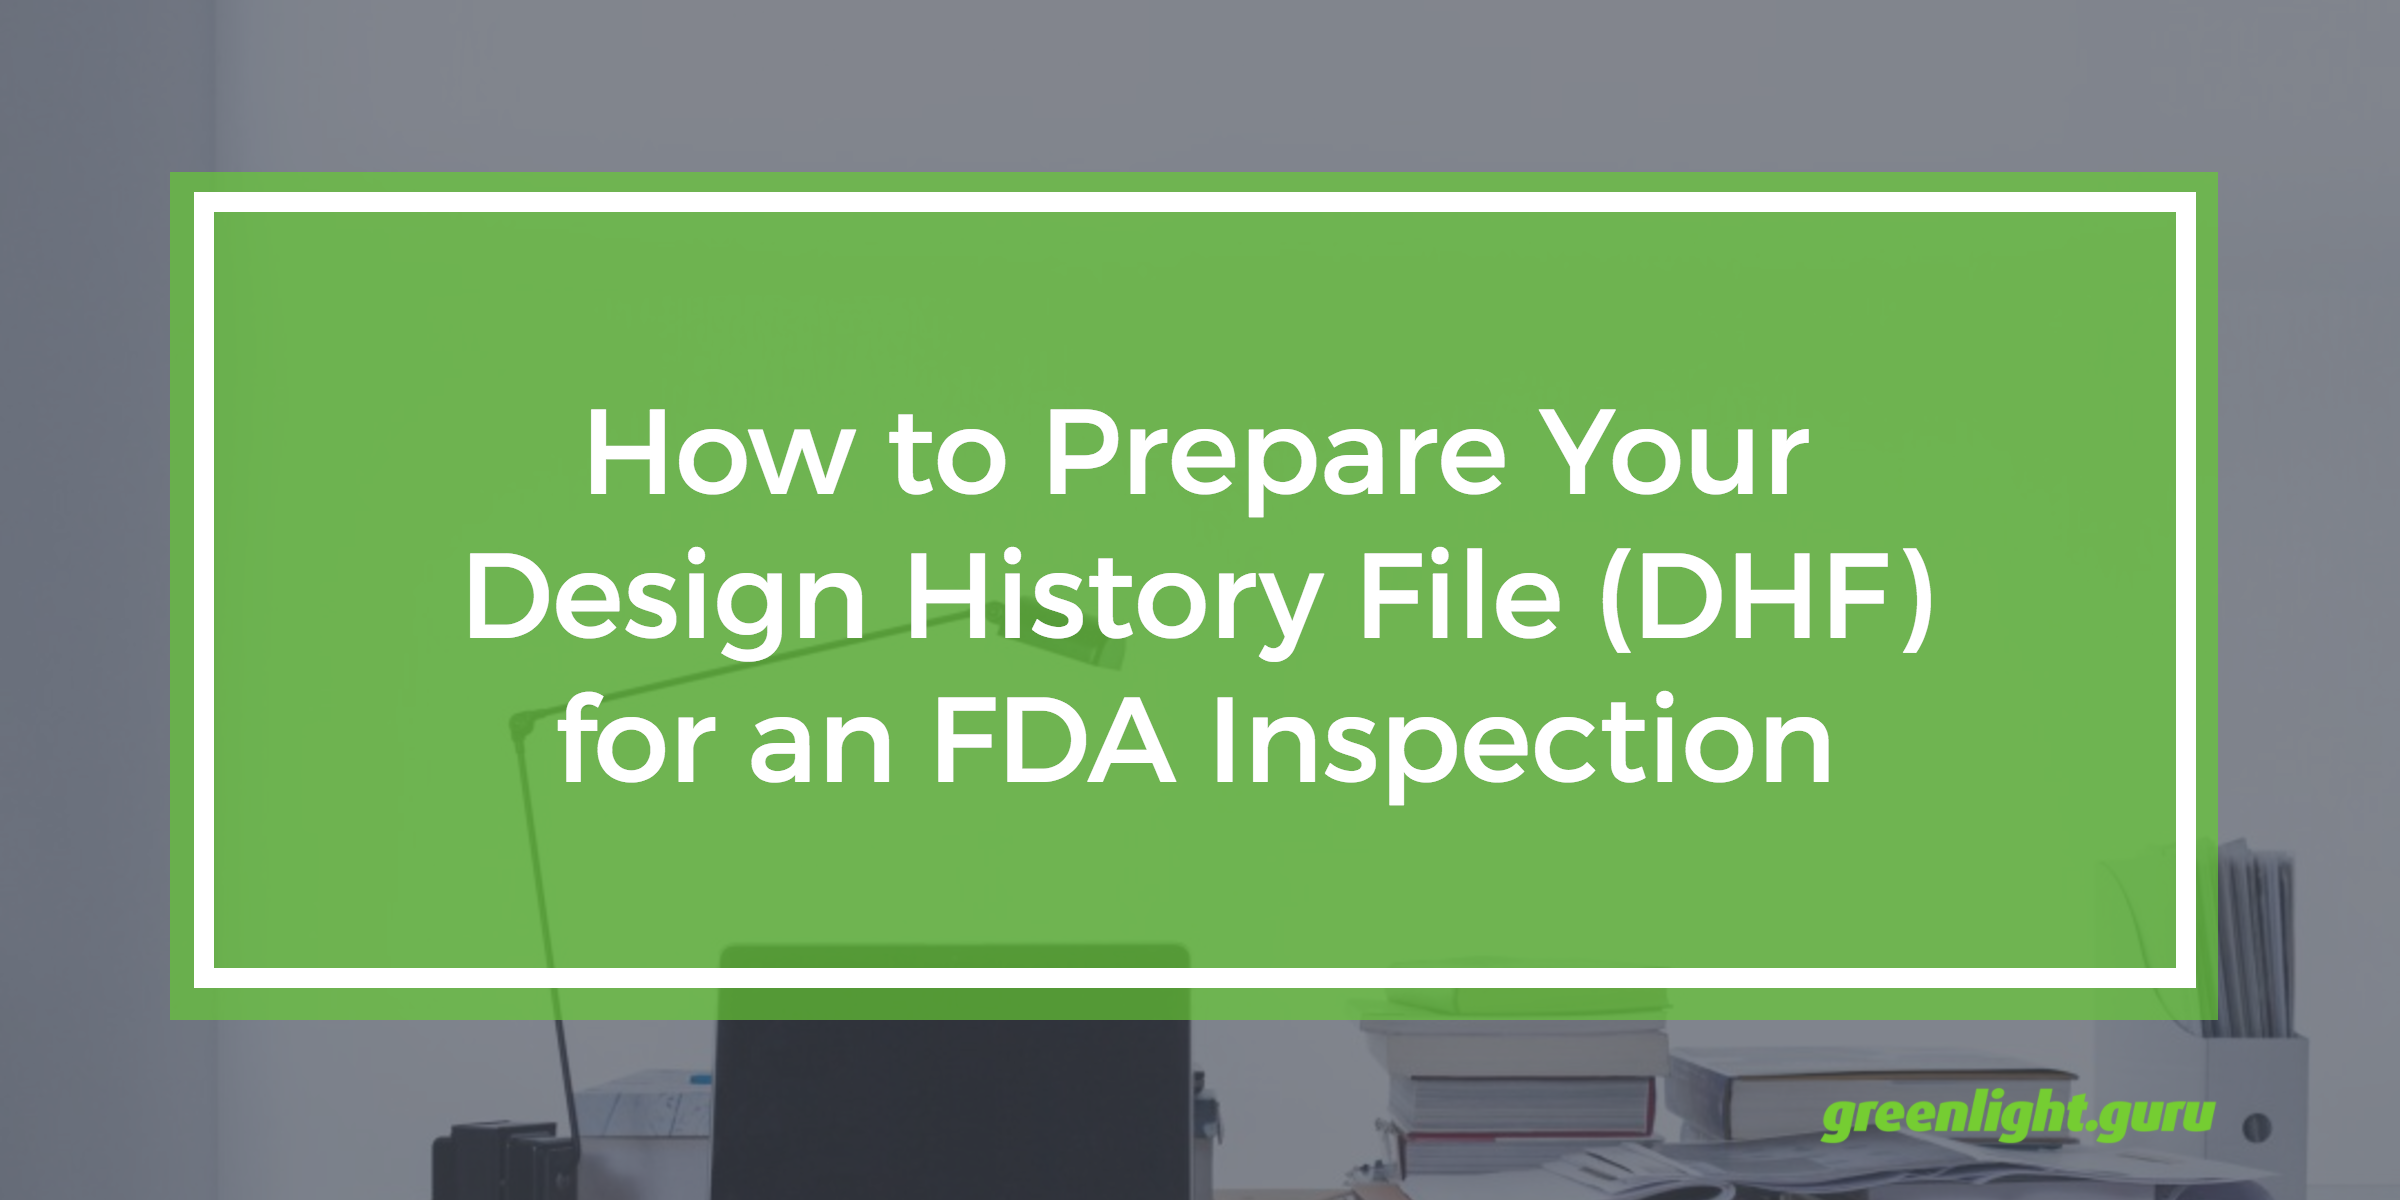 how_to_prepare_your_design_history_file_for_fda_inspection.png